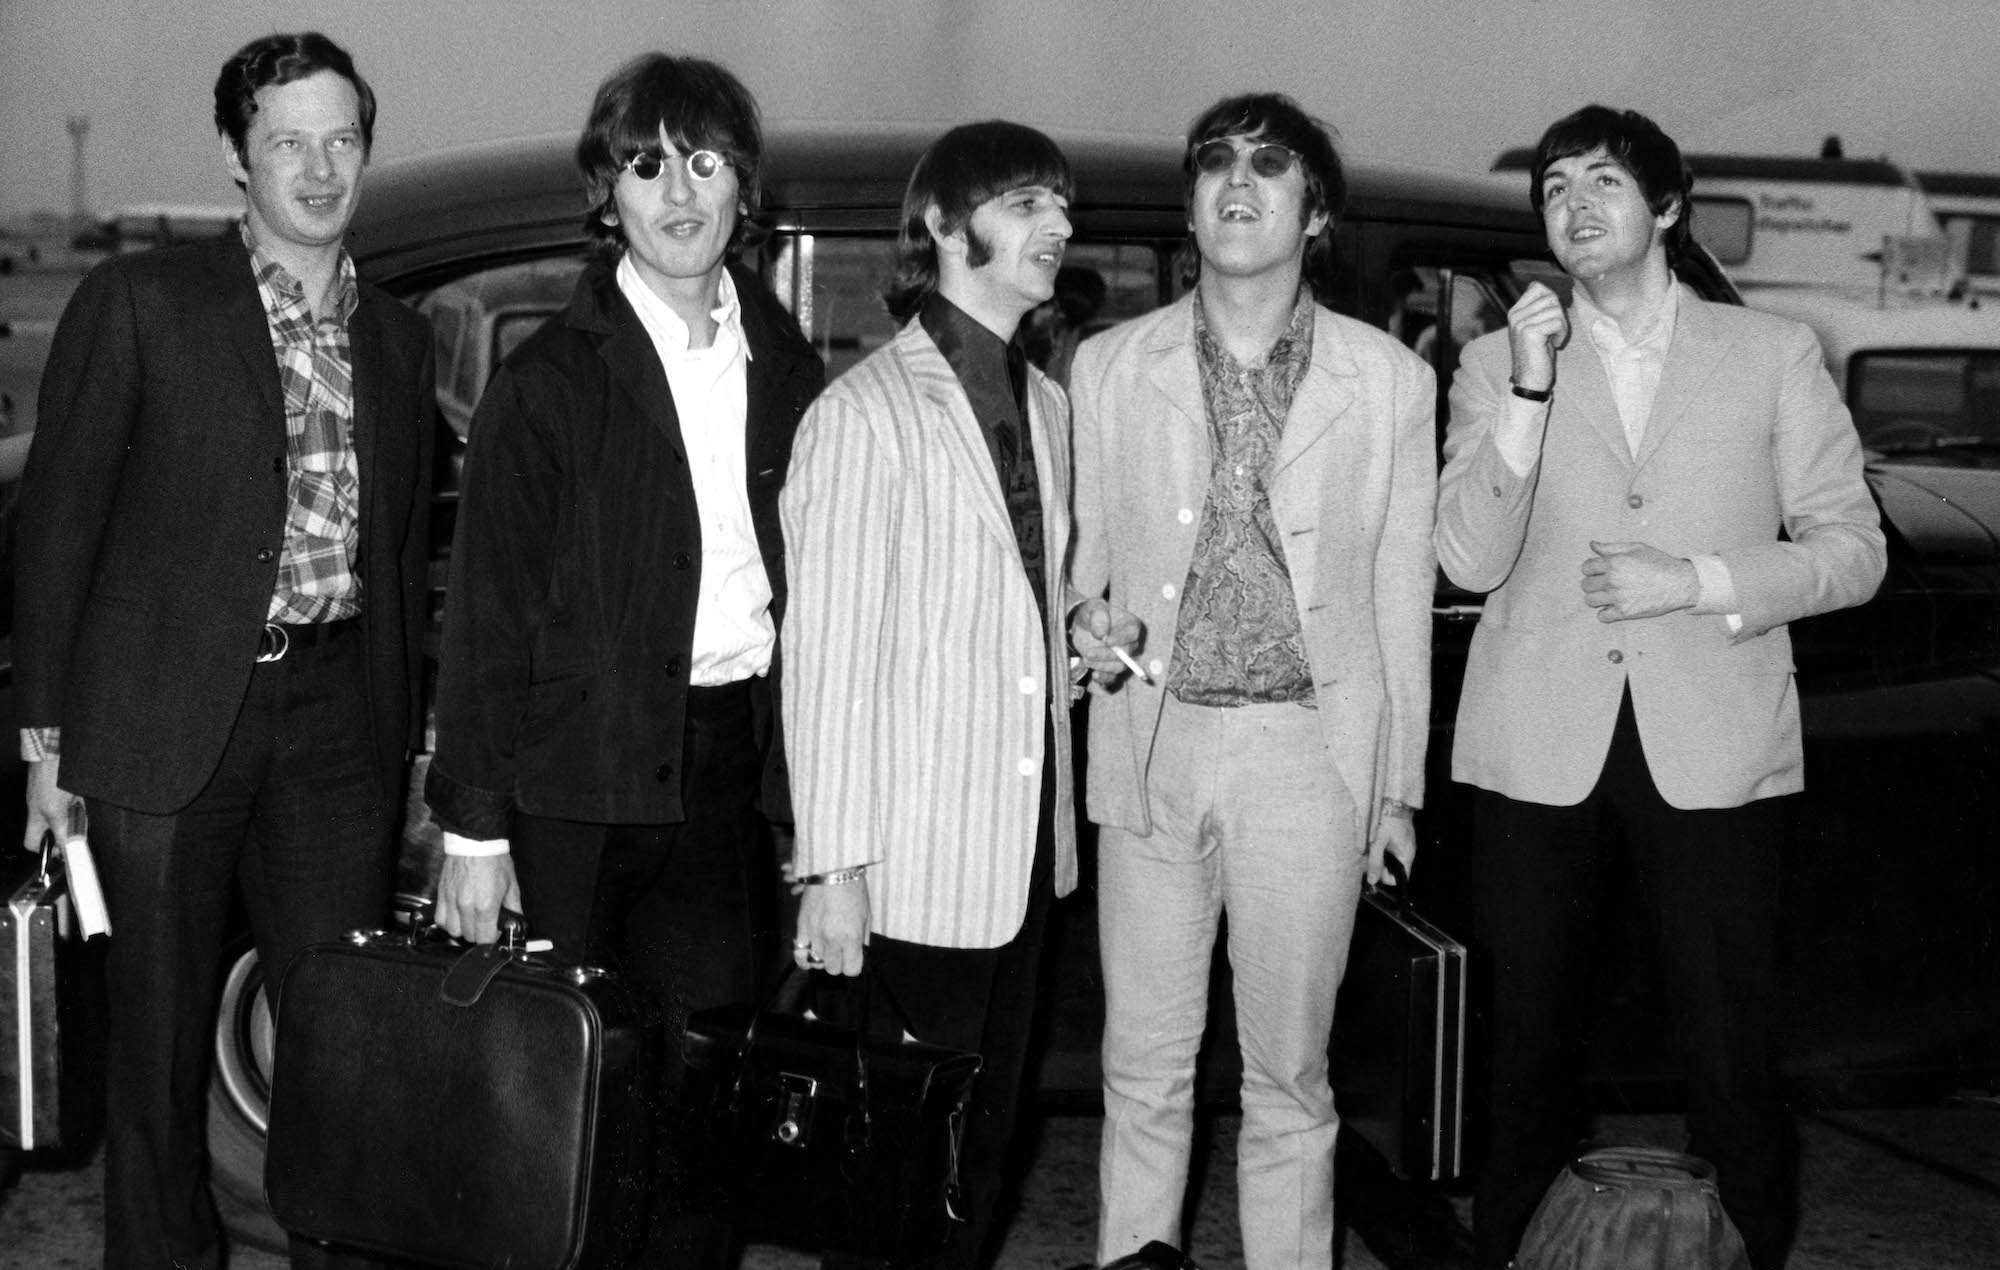 'The Queen's Gambit' actor to play Beatles manager in new film